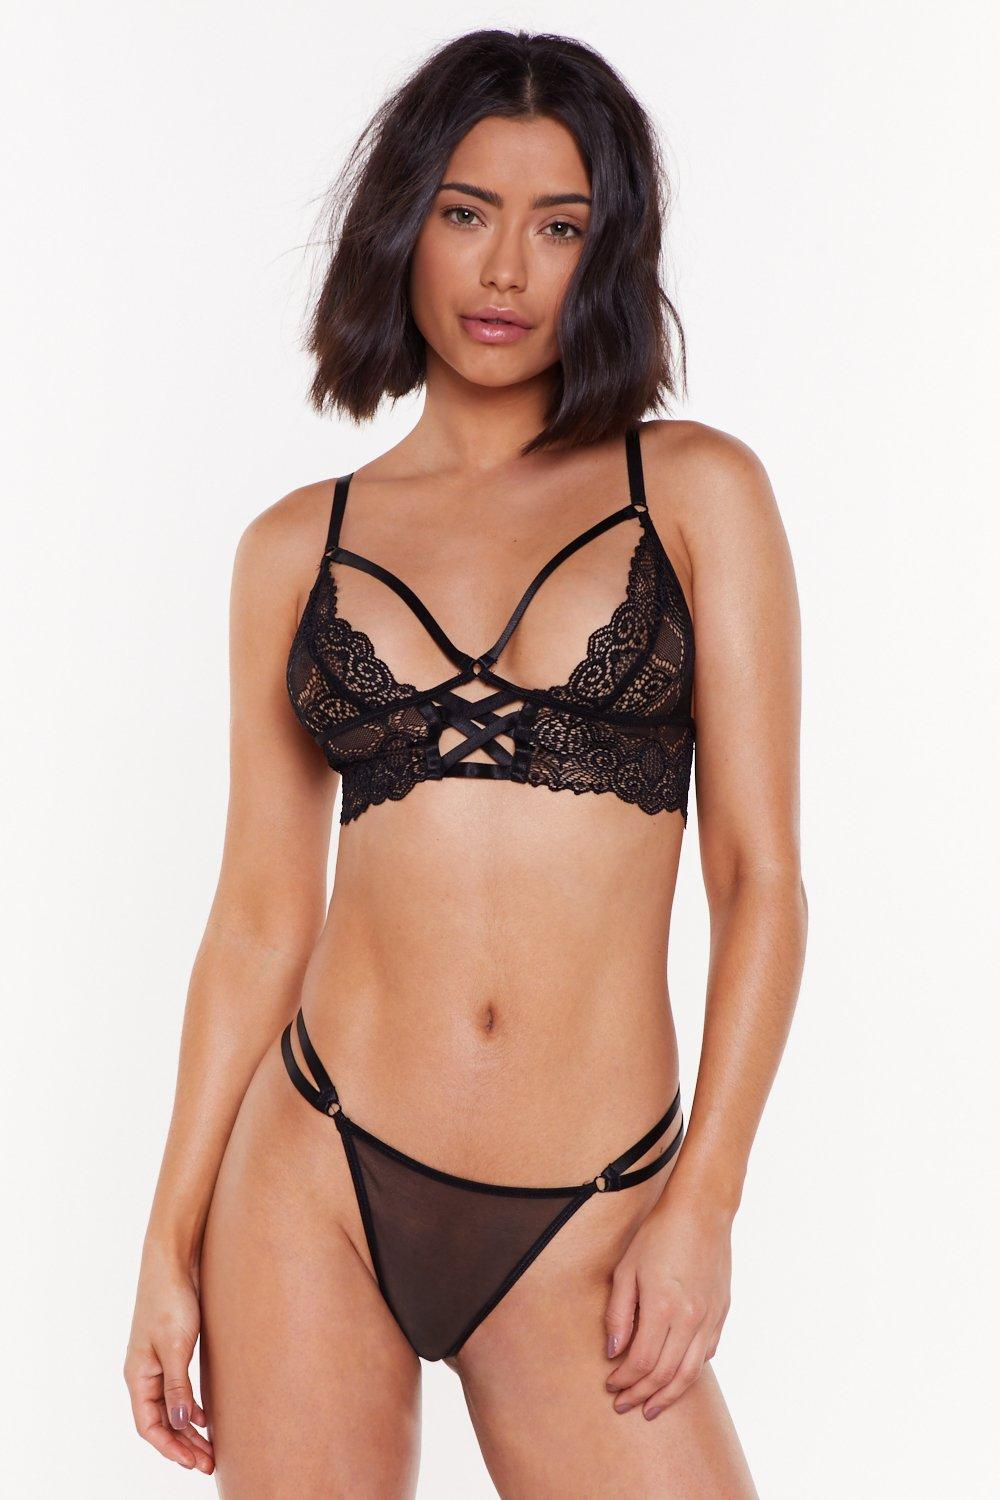 Invade My Personal Lace Strappy Bralette And High Leg Thong by Nasty Gal